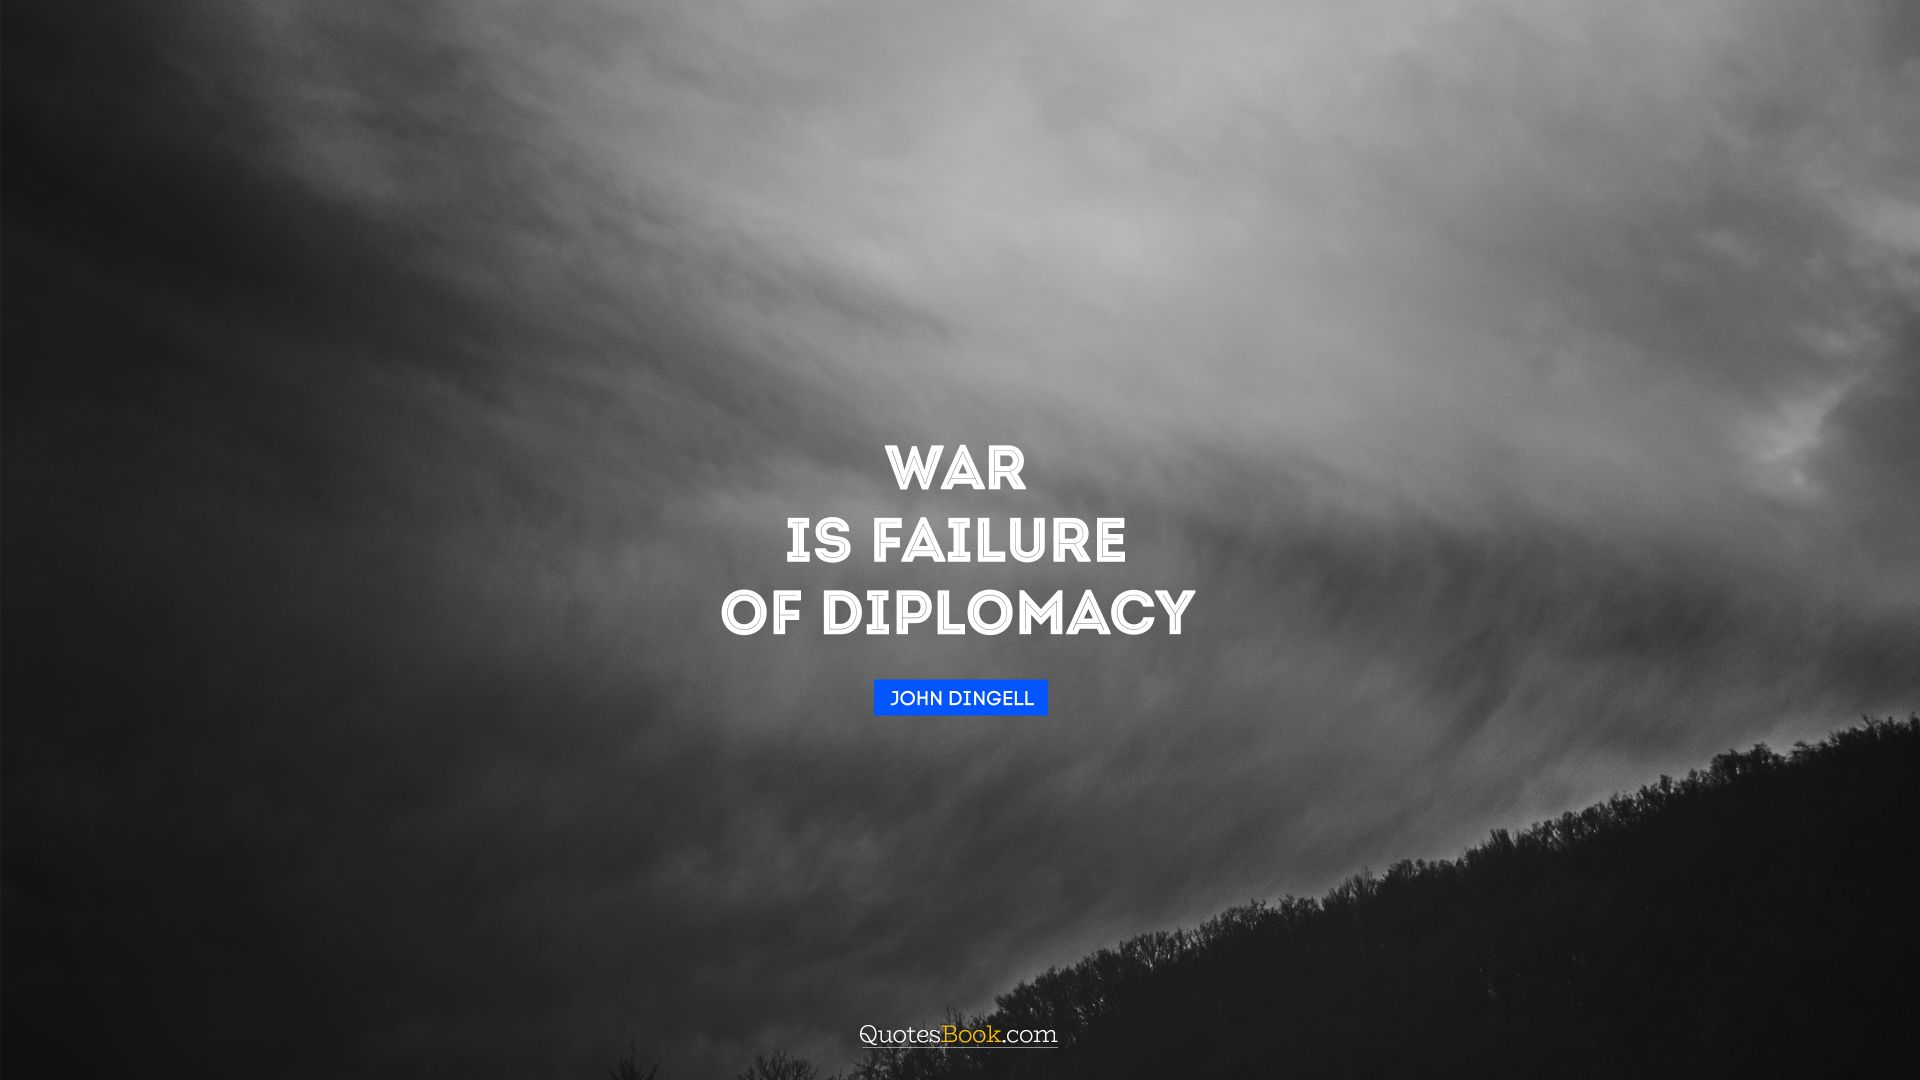 War is failure of diplomacy. - Quote by John Dingell